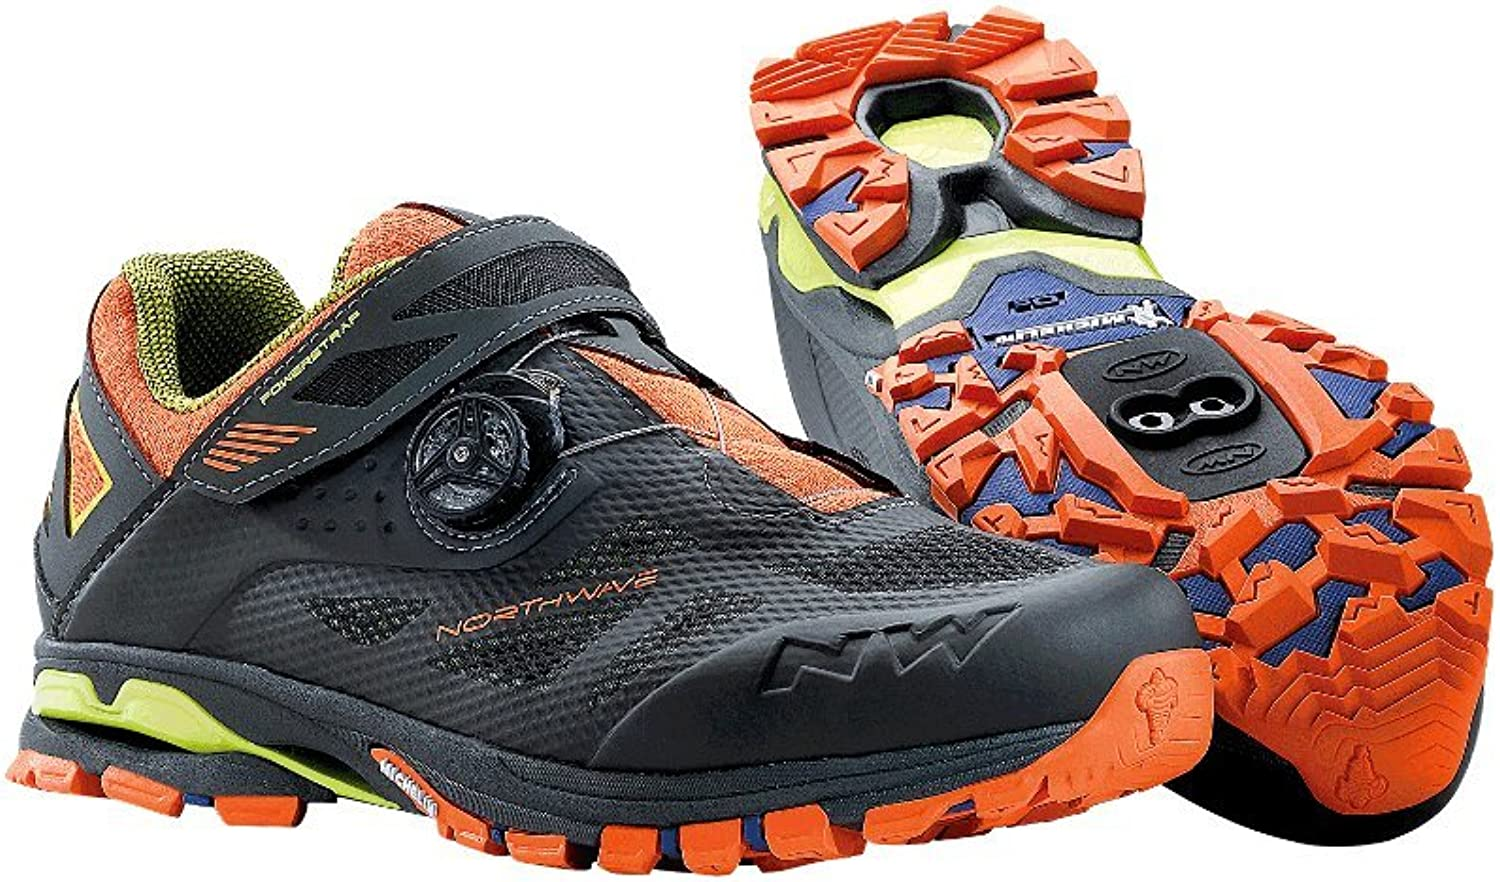 Northwave Spider Plus 2 Mountainbike Schuhe Antra-schwarz-Orange